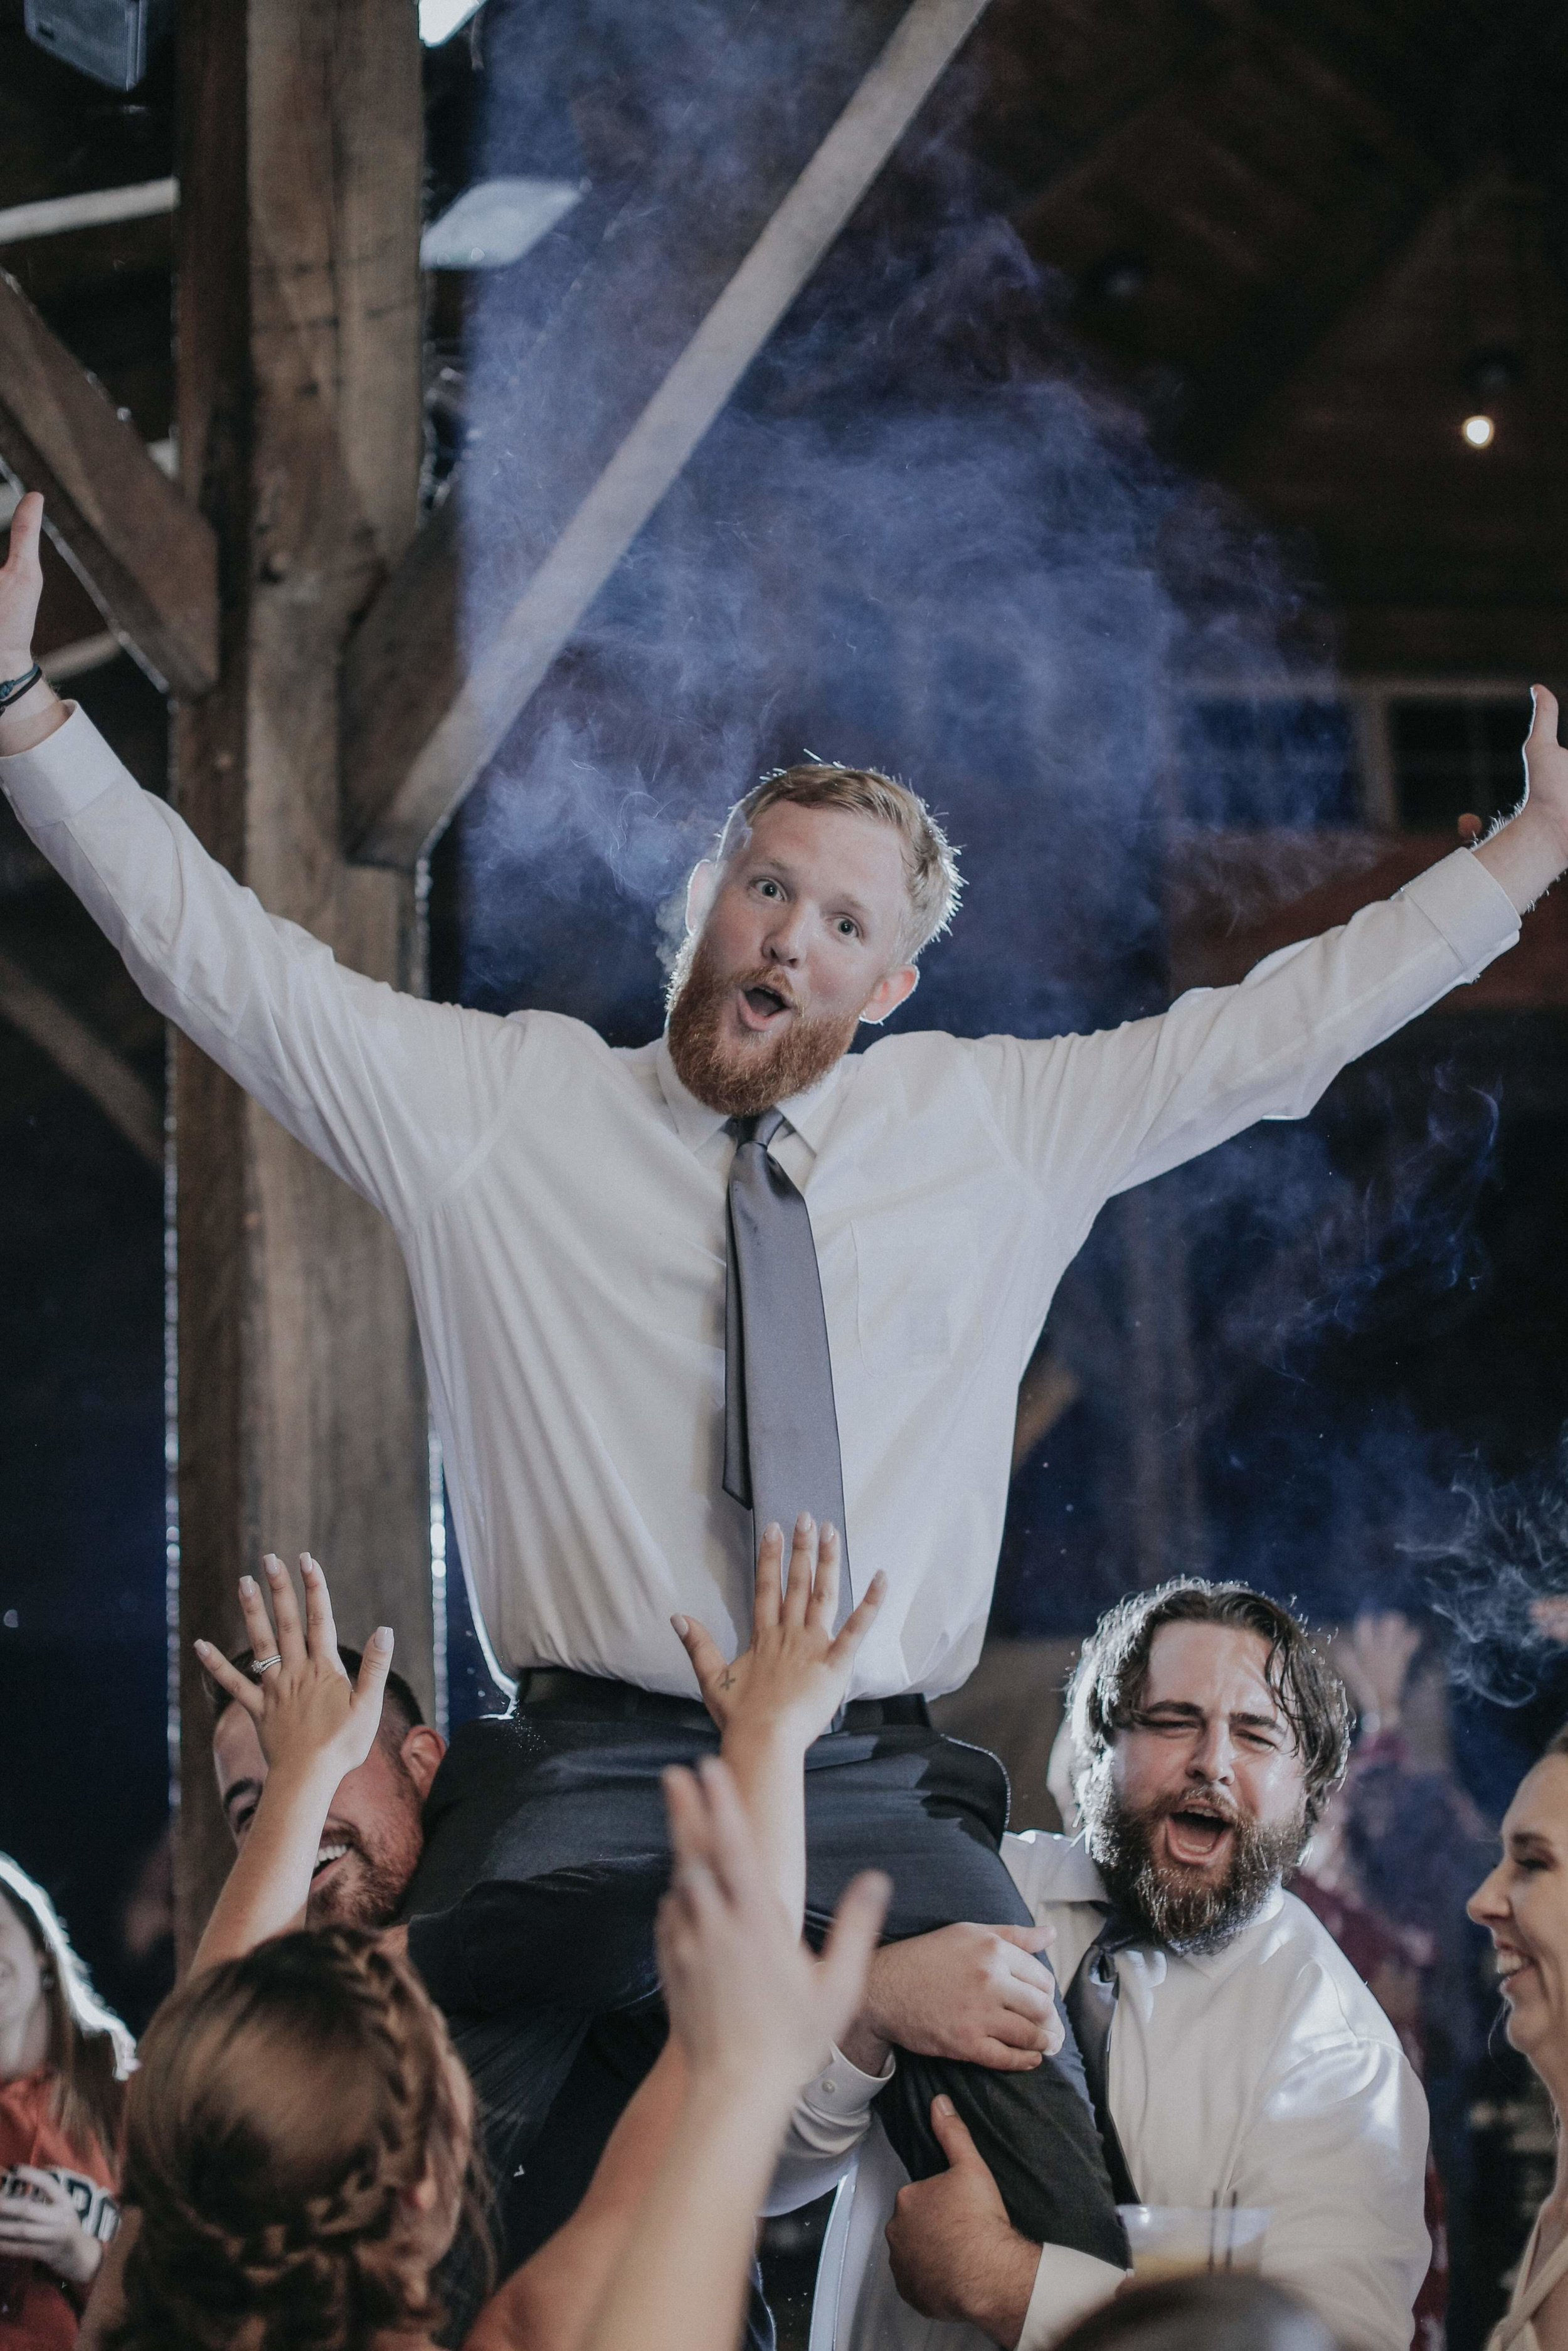 Groom celebrating at wedding reception at rustic wedding in Farmington, PA planned by Exhale Events. Find more wedding inspiration at exhale-events.com!